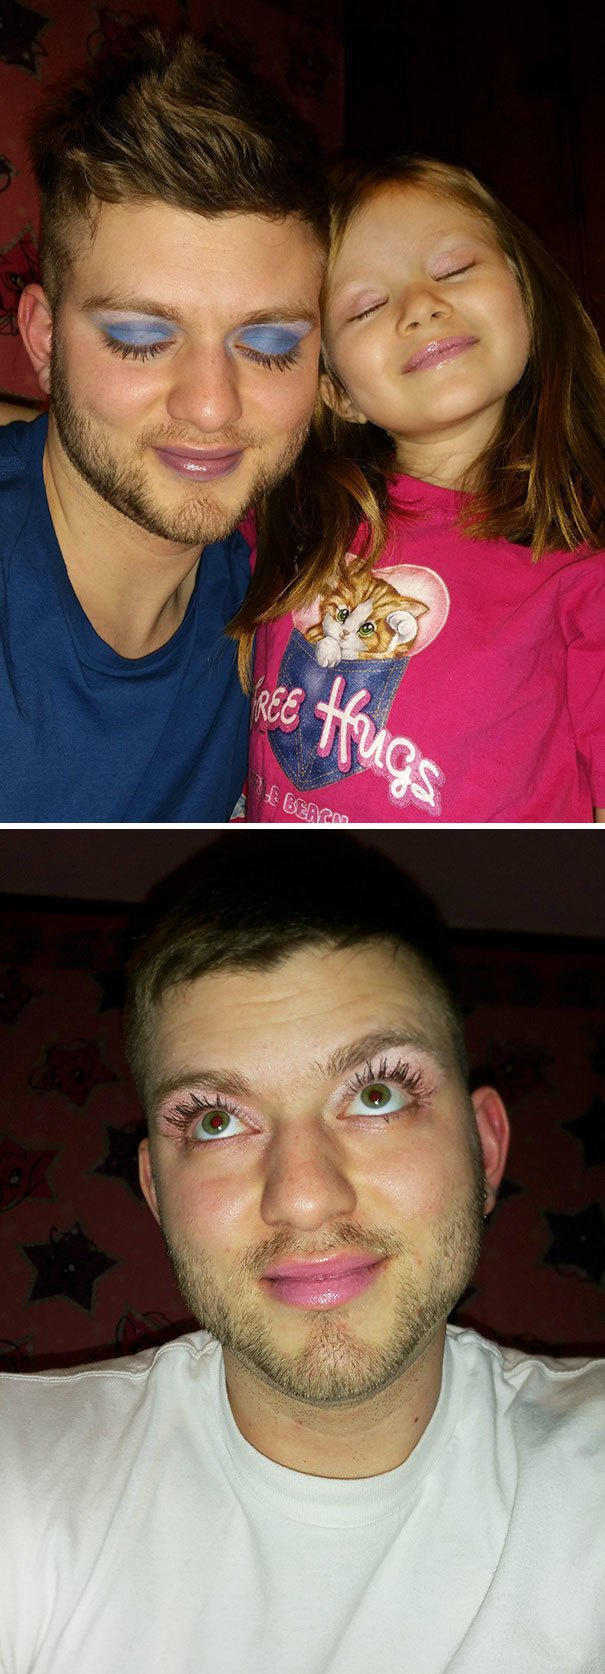 You're not a true single father unless you let your daughter practice makeup.